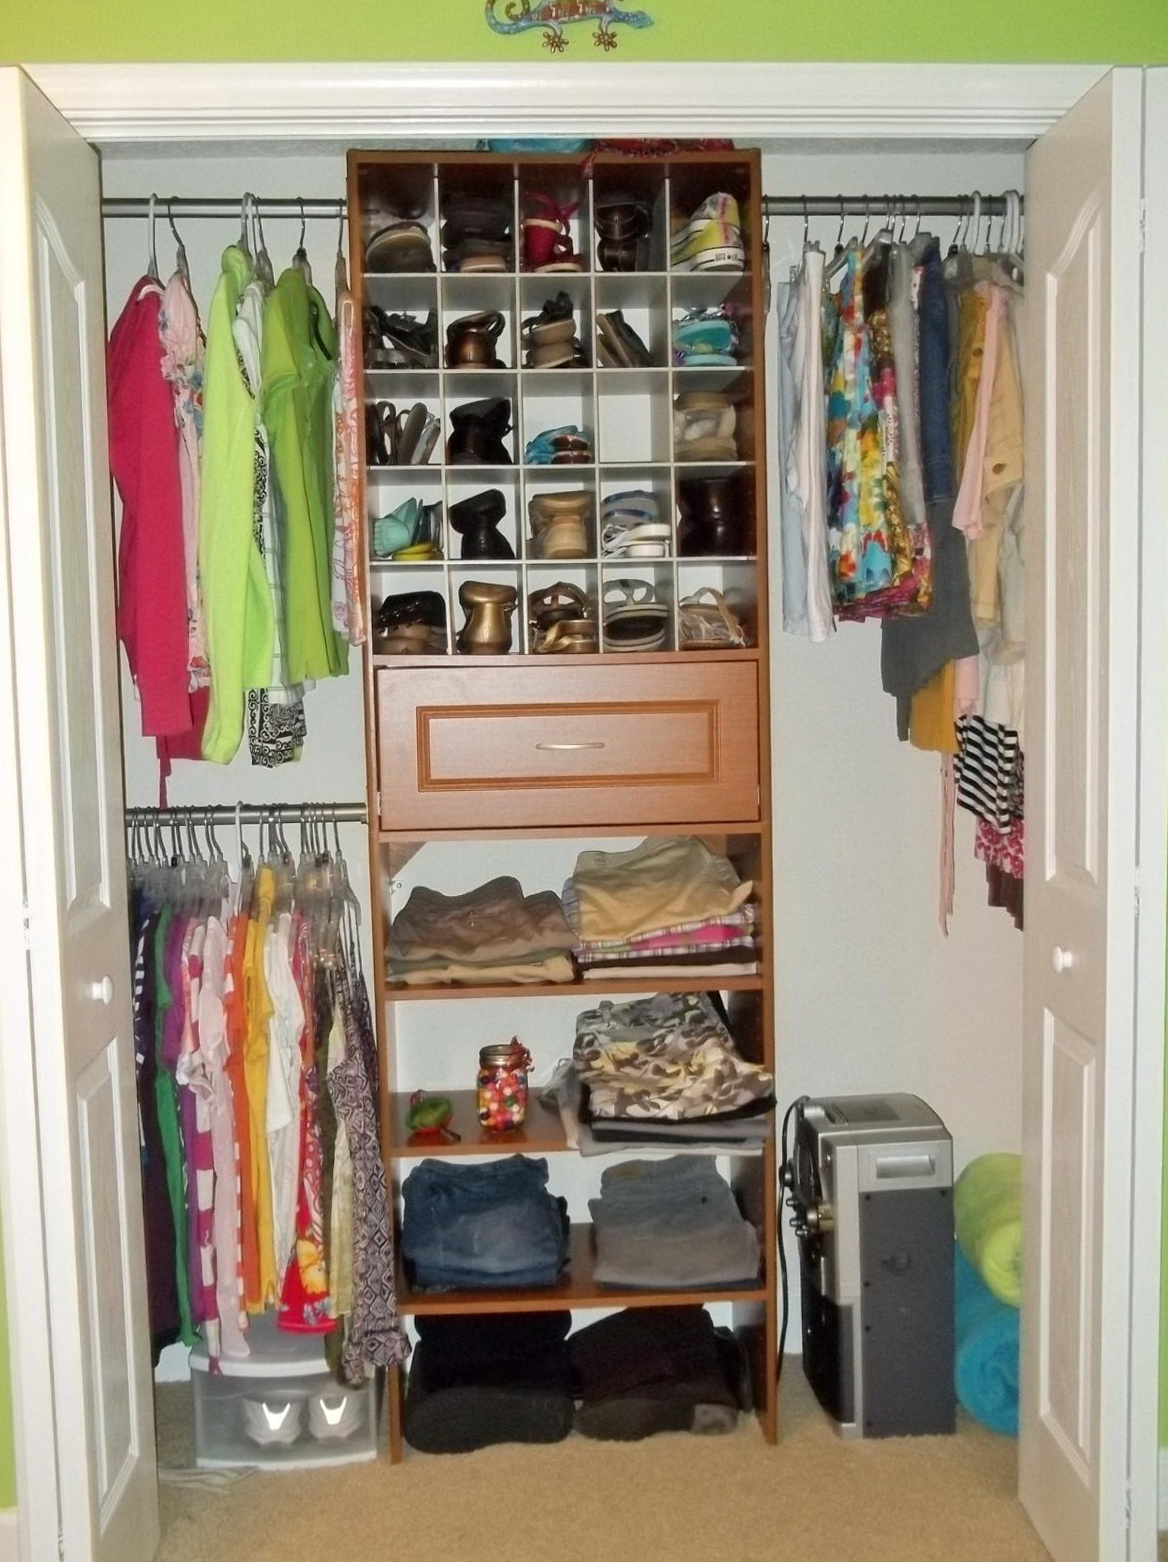 Diy Closet Organization Ideas Home Design Ideas: diy wardrobe organising ideas